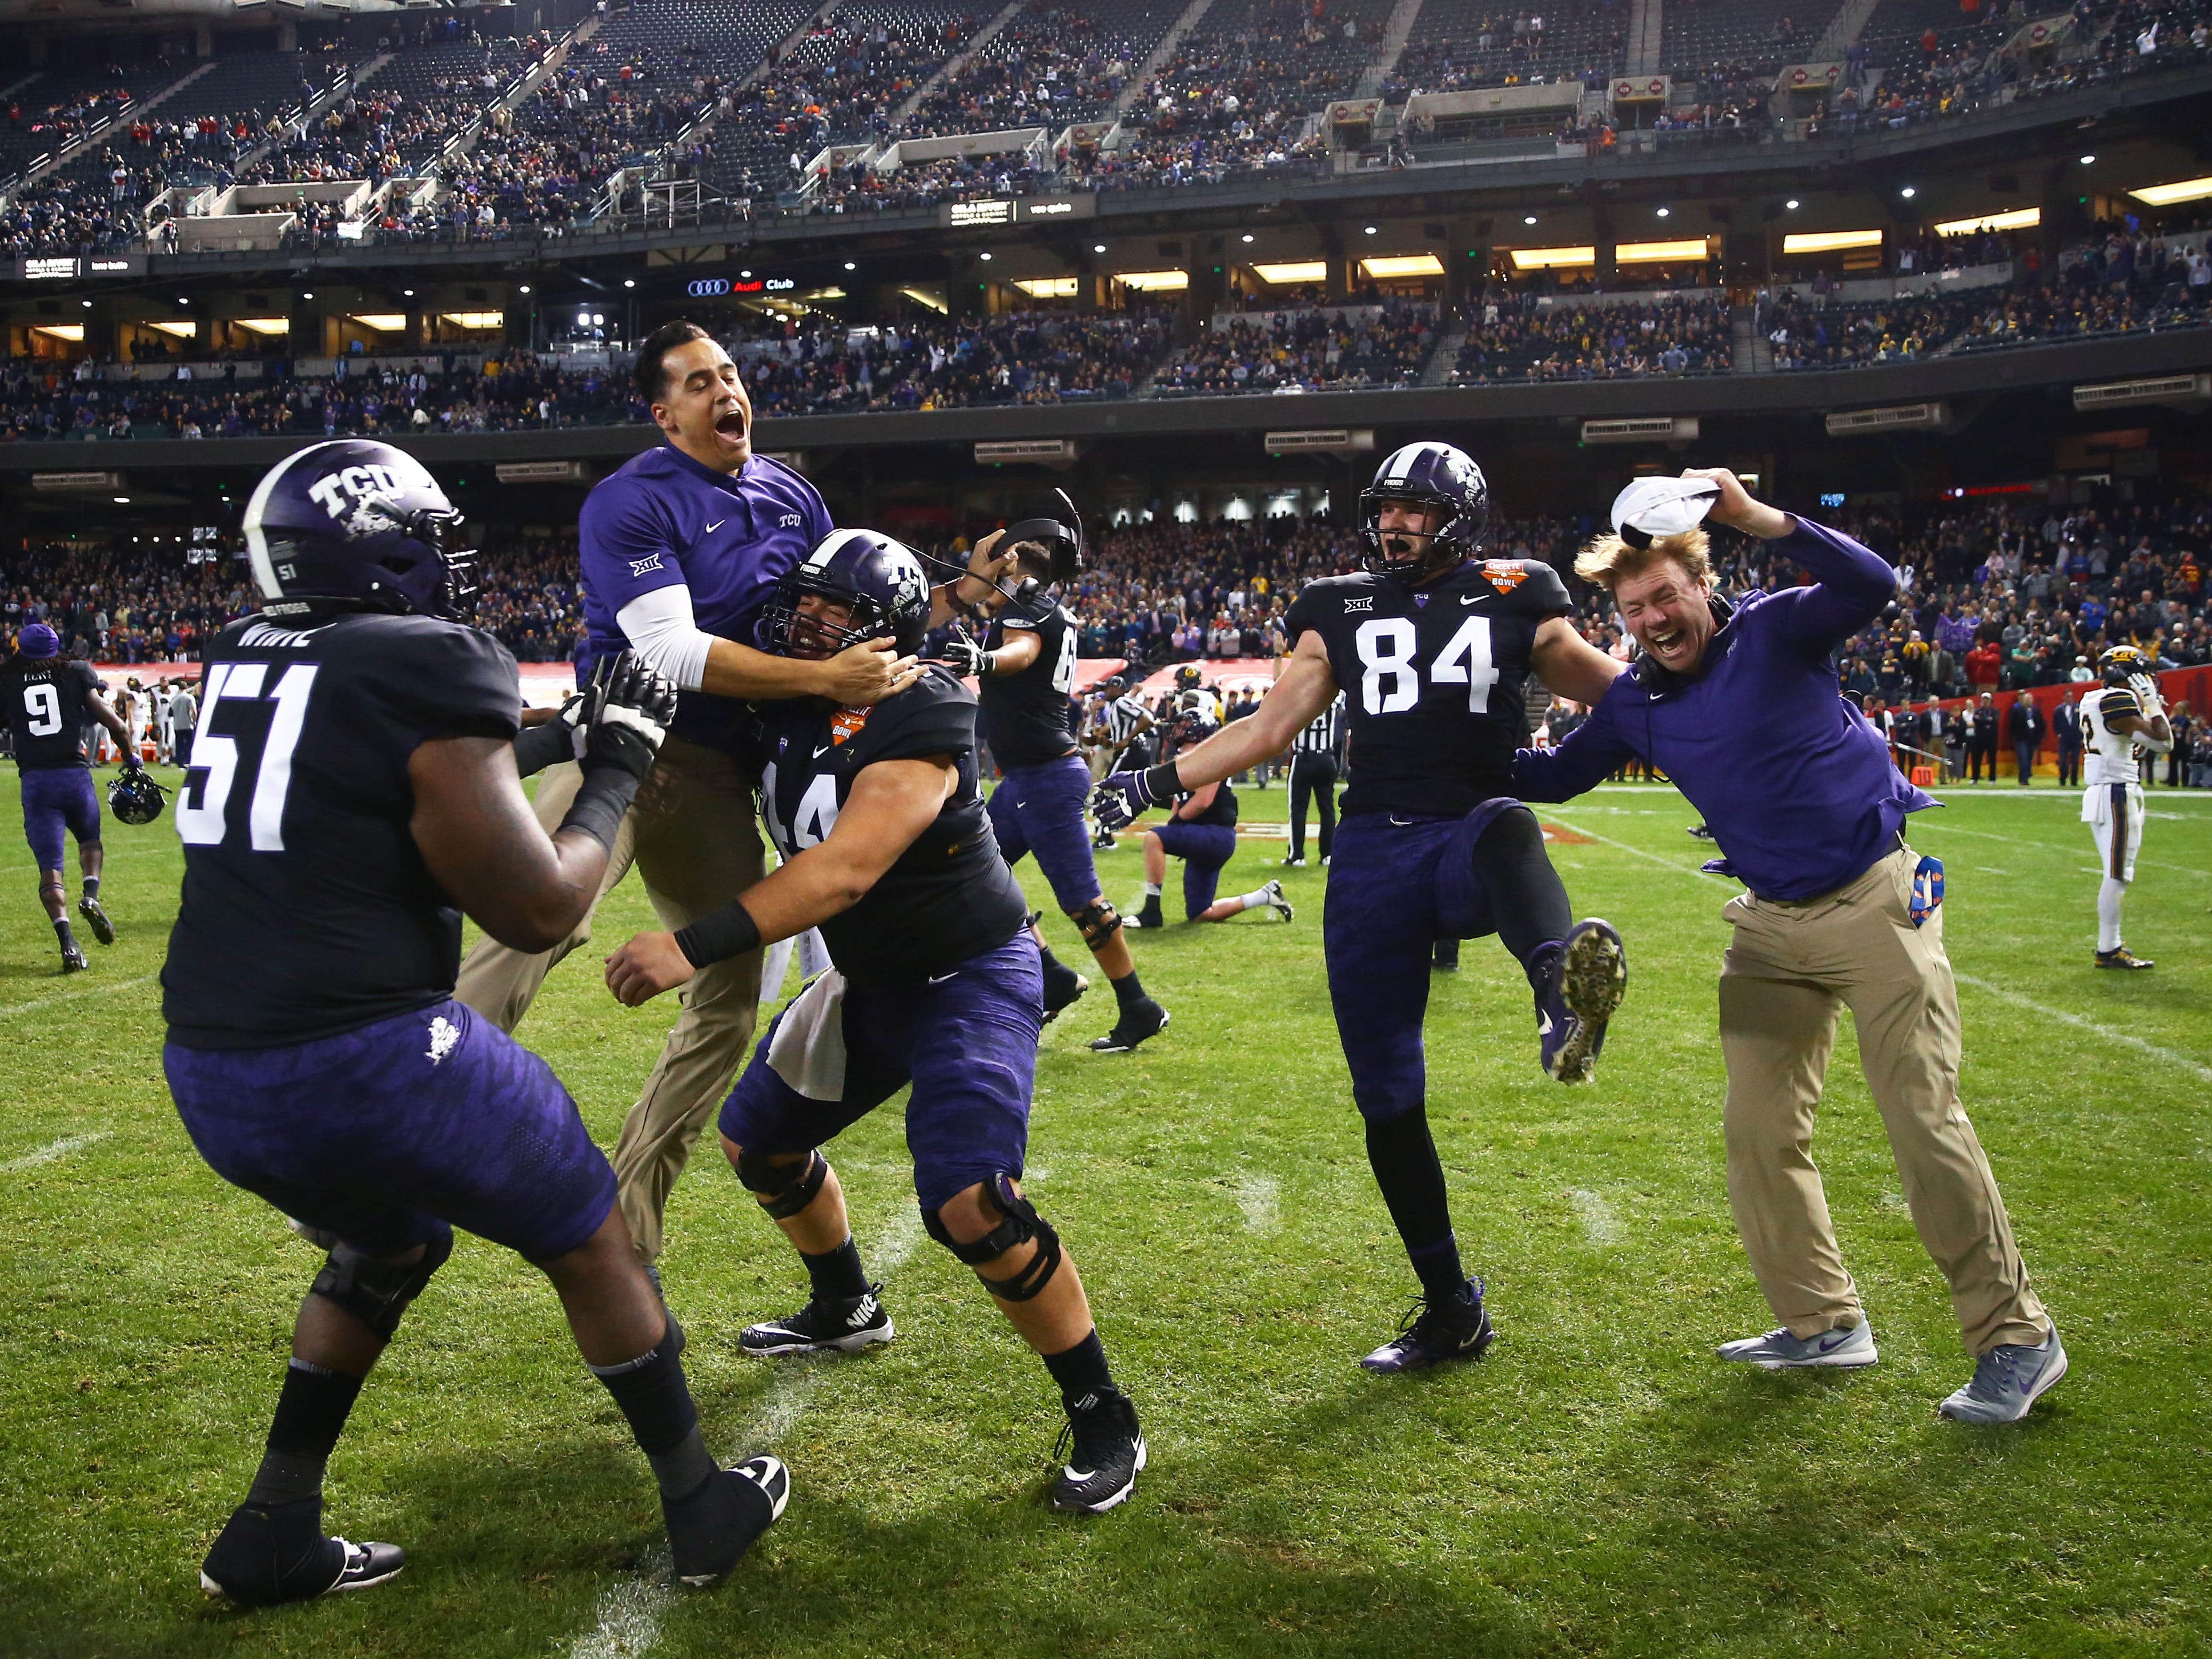 Dec 26, 2018; Phoenix, AZ, USA; Texas Christian Horned Frogs players celebrate after defeating the California Golden Bears in overtime of the 2018 Cheez-It Bowl at Chase Field.